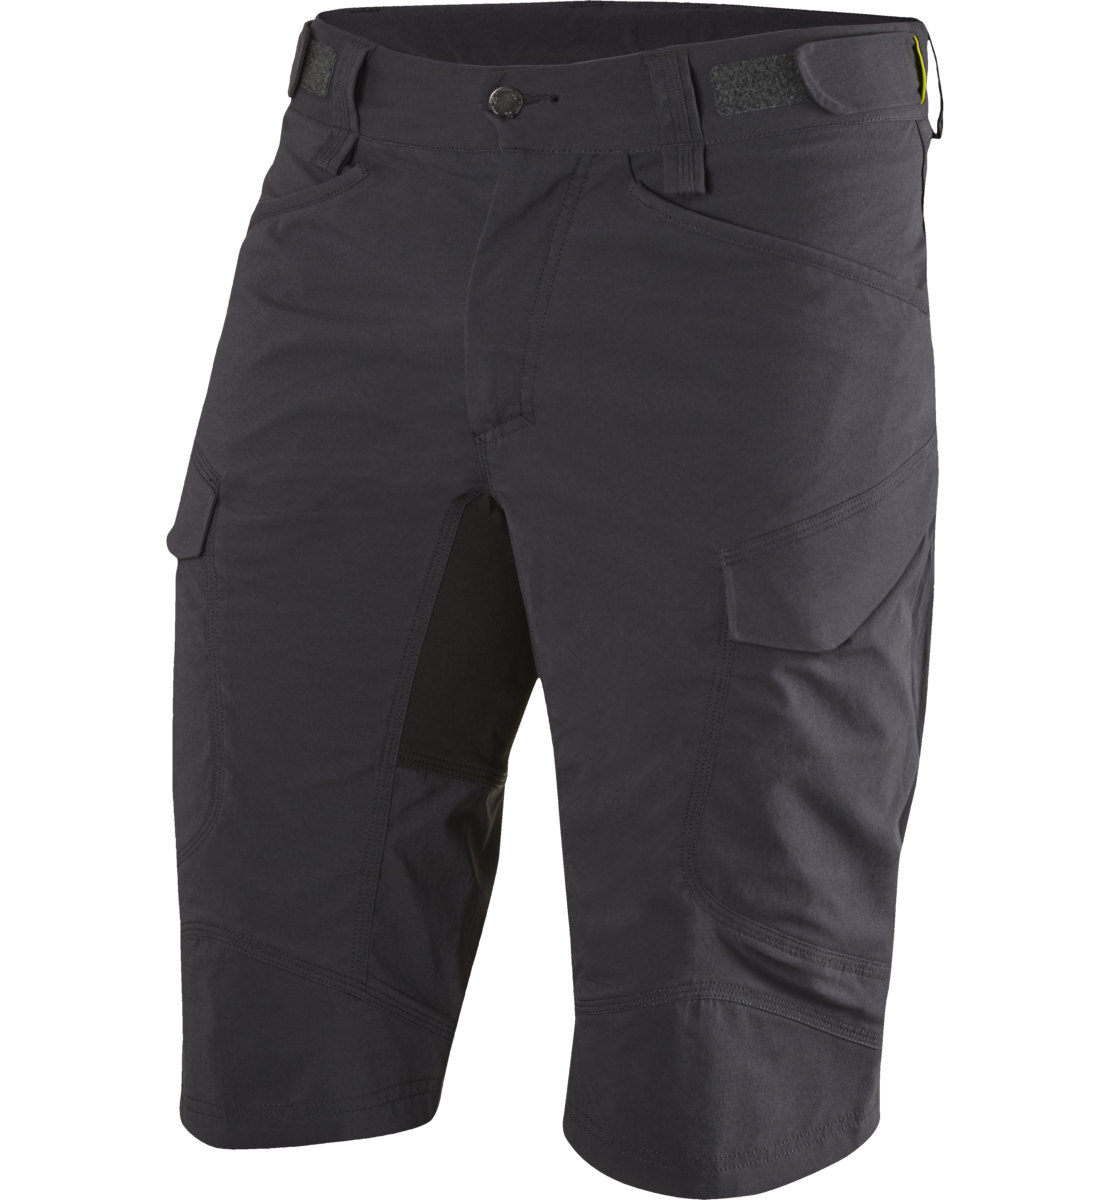 Rugged Crest Shorts Men